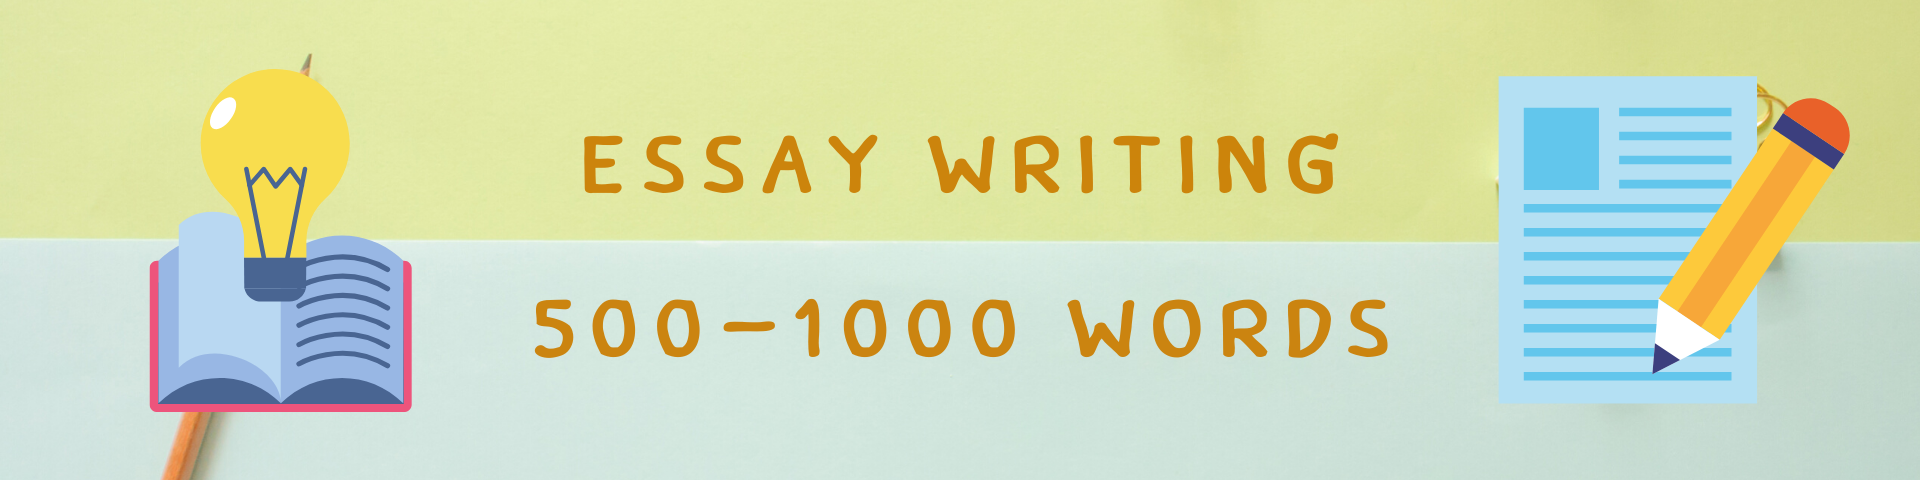 I can write a 500-1000 word essay related to science,  literature,  and blogging.